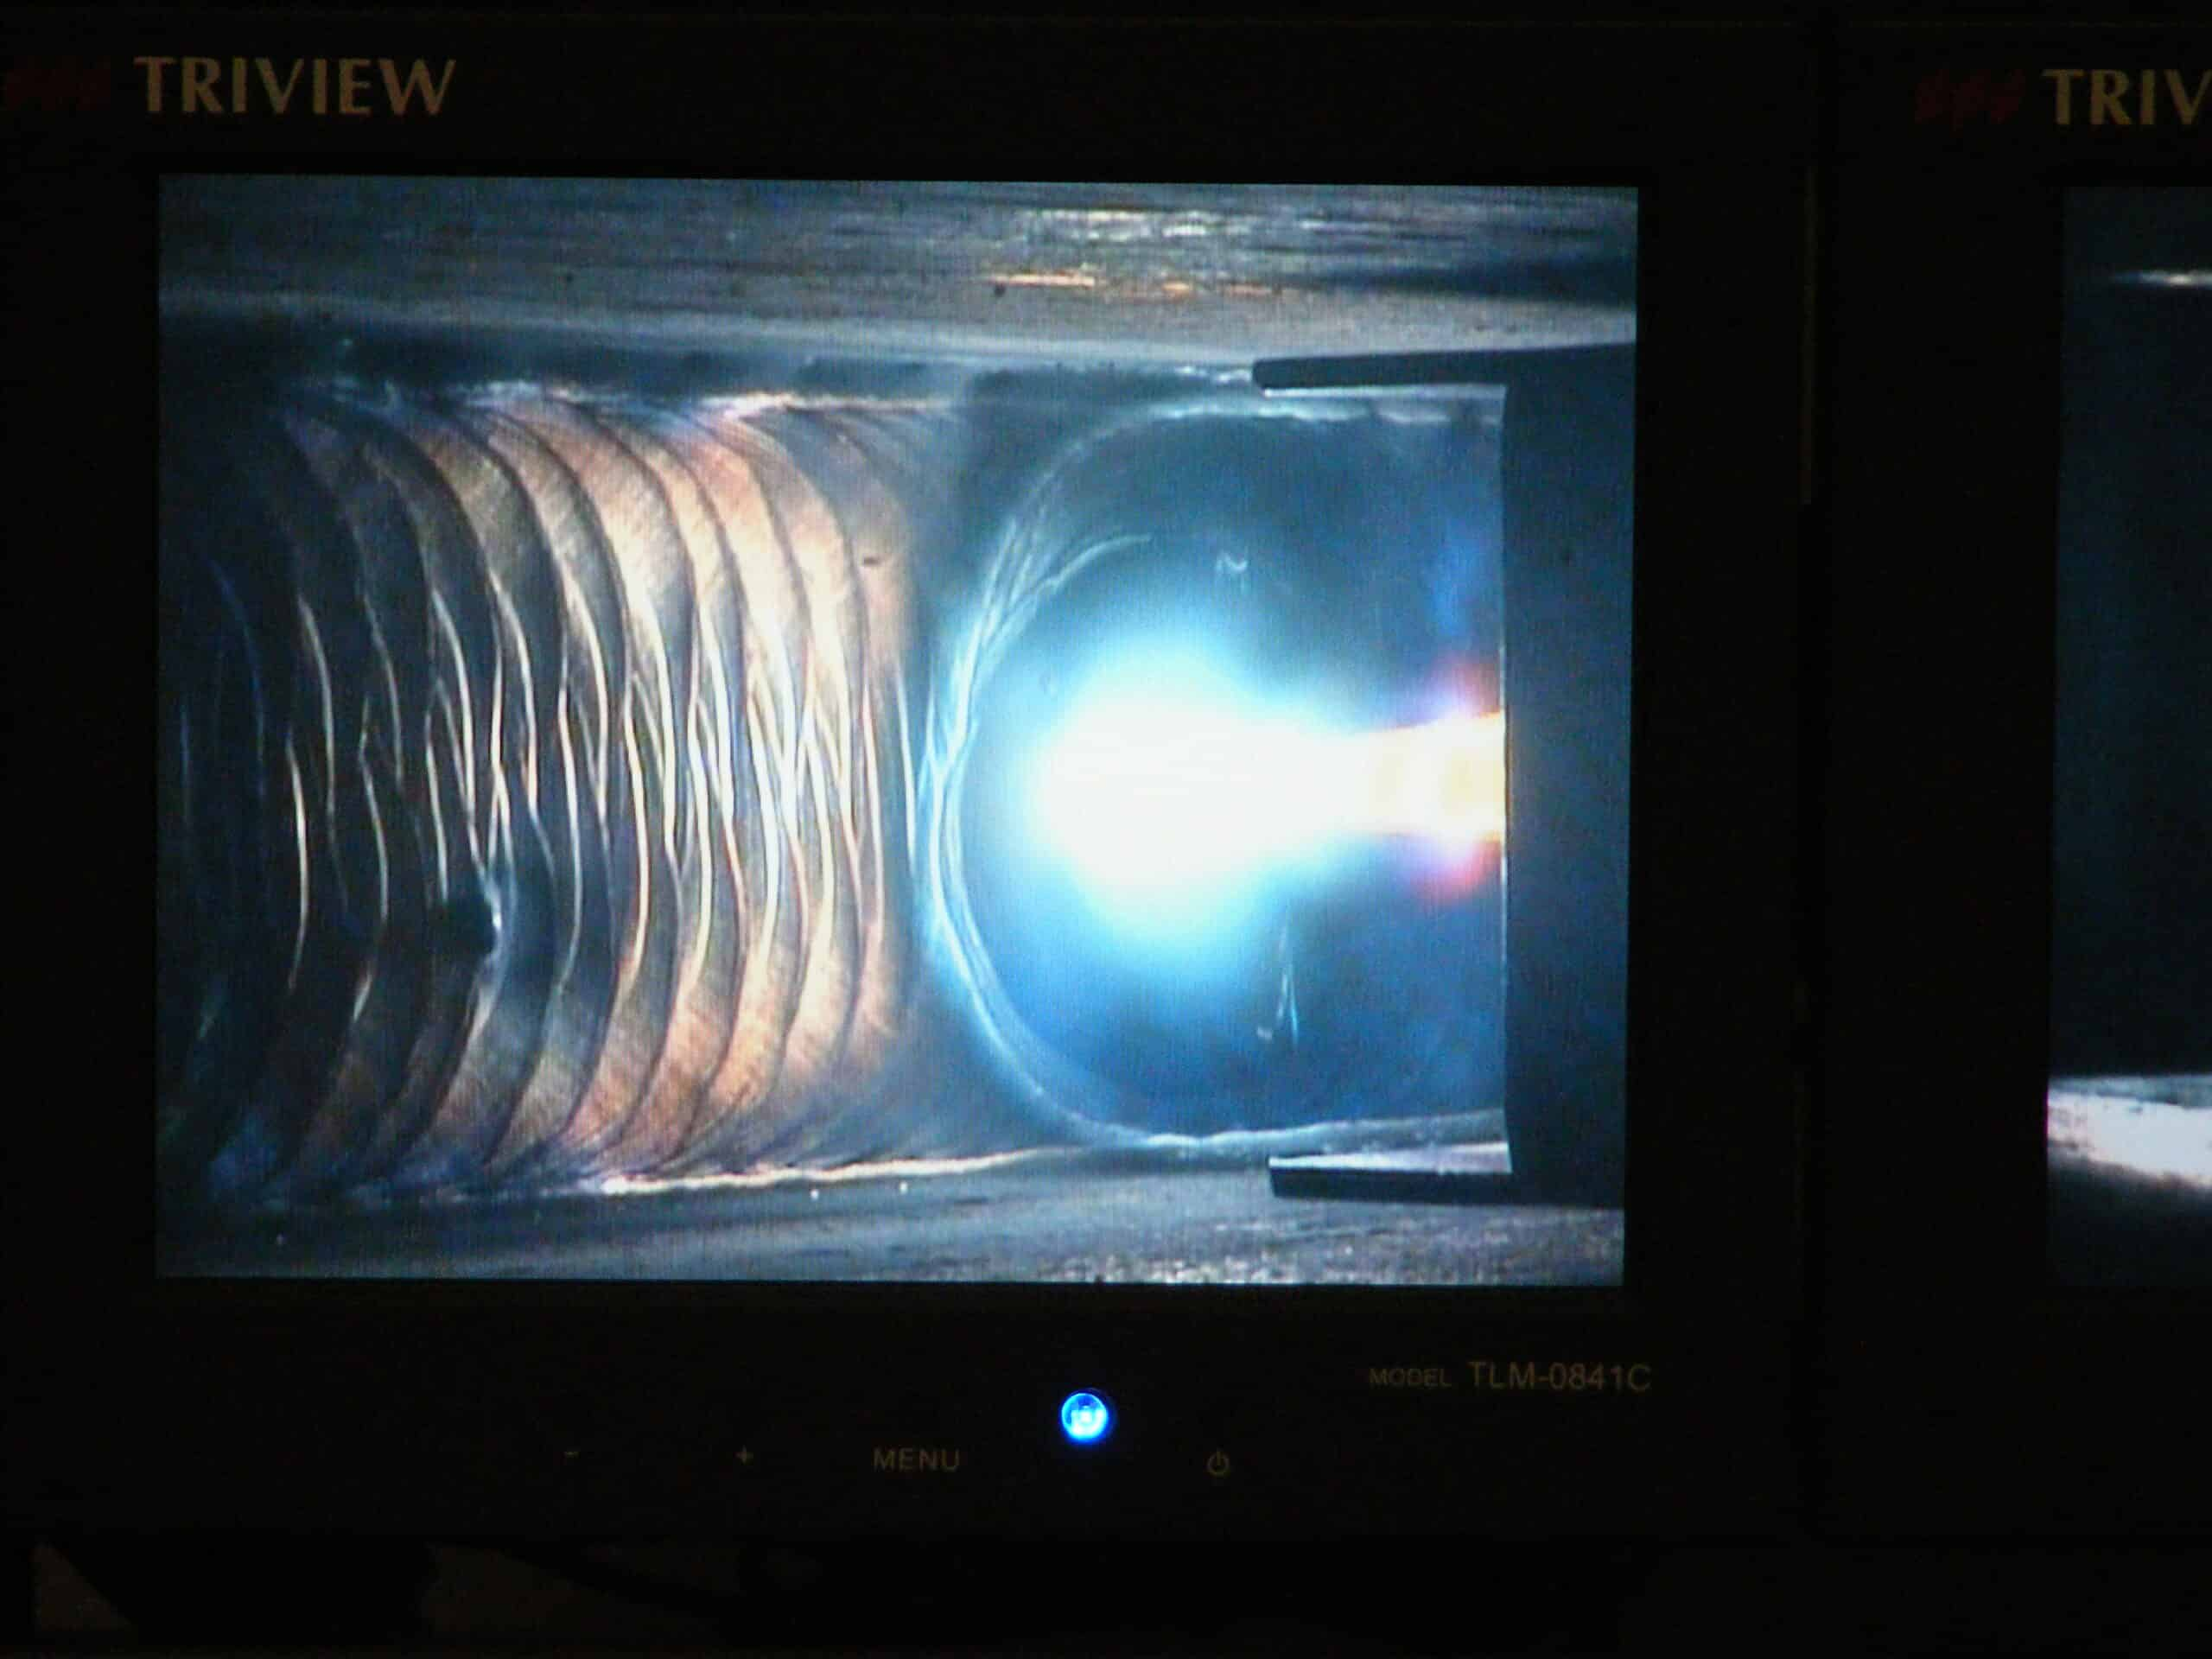 Using Computer Vision in Welding: Tracking the Arc and Weld Puddle